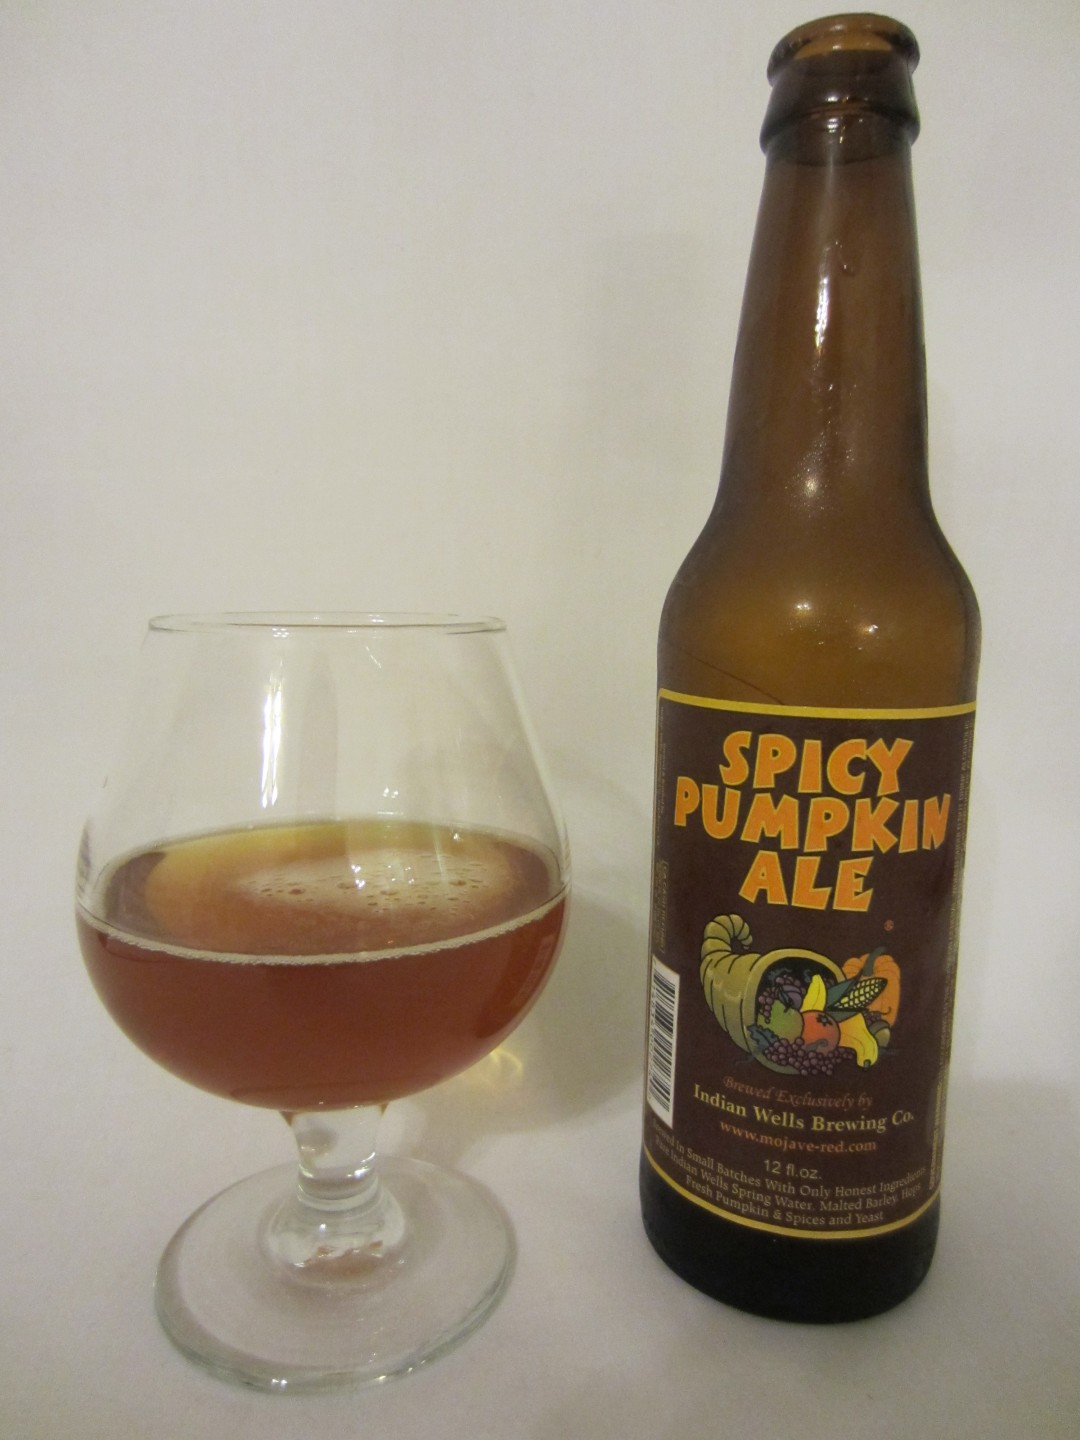 Spicy Pumpkin Ale - Indian Wells Brewing Company